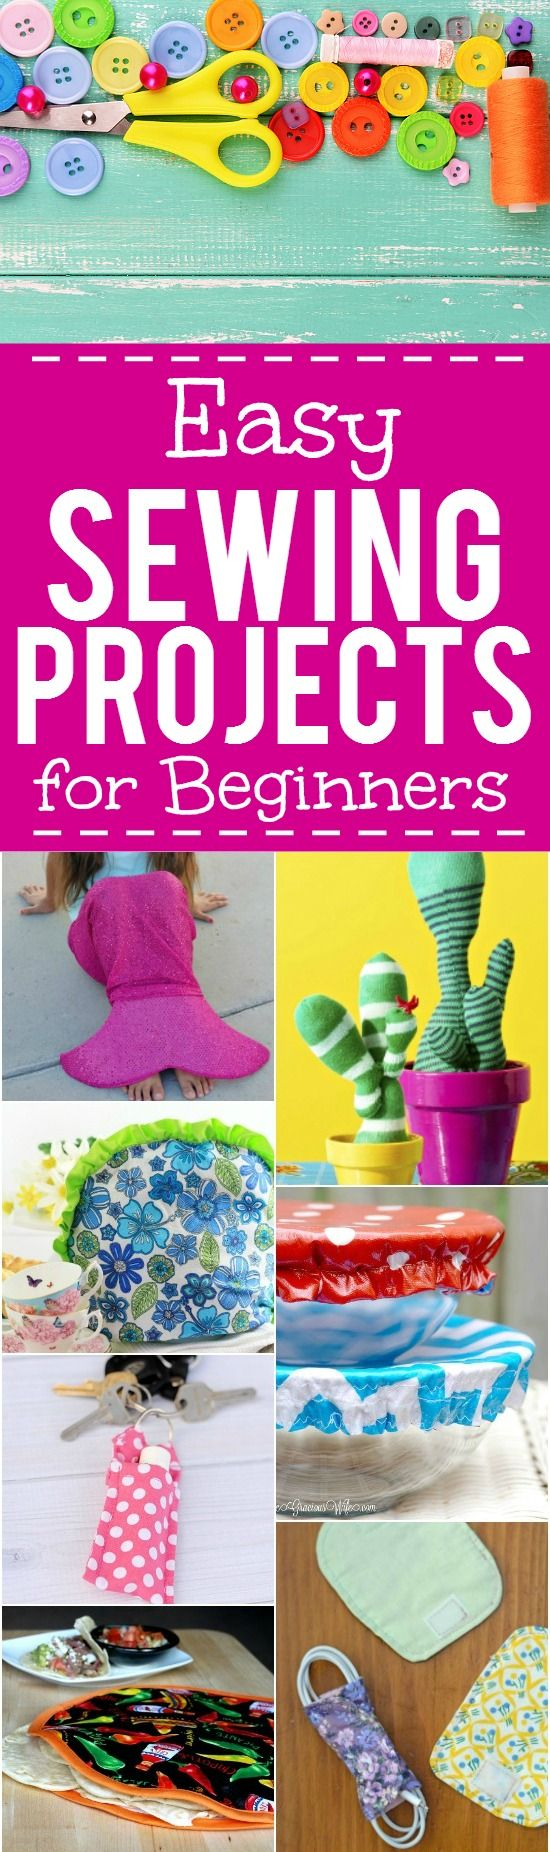 56 Quick and Easy Sewing Projects for Beginners –If you're new to sewing o…